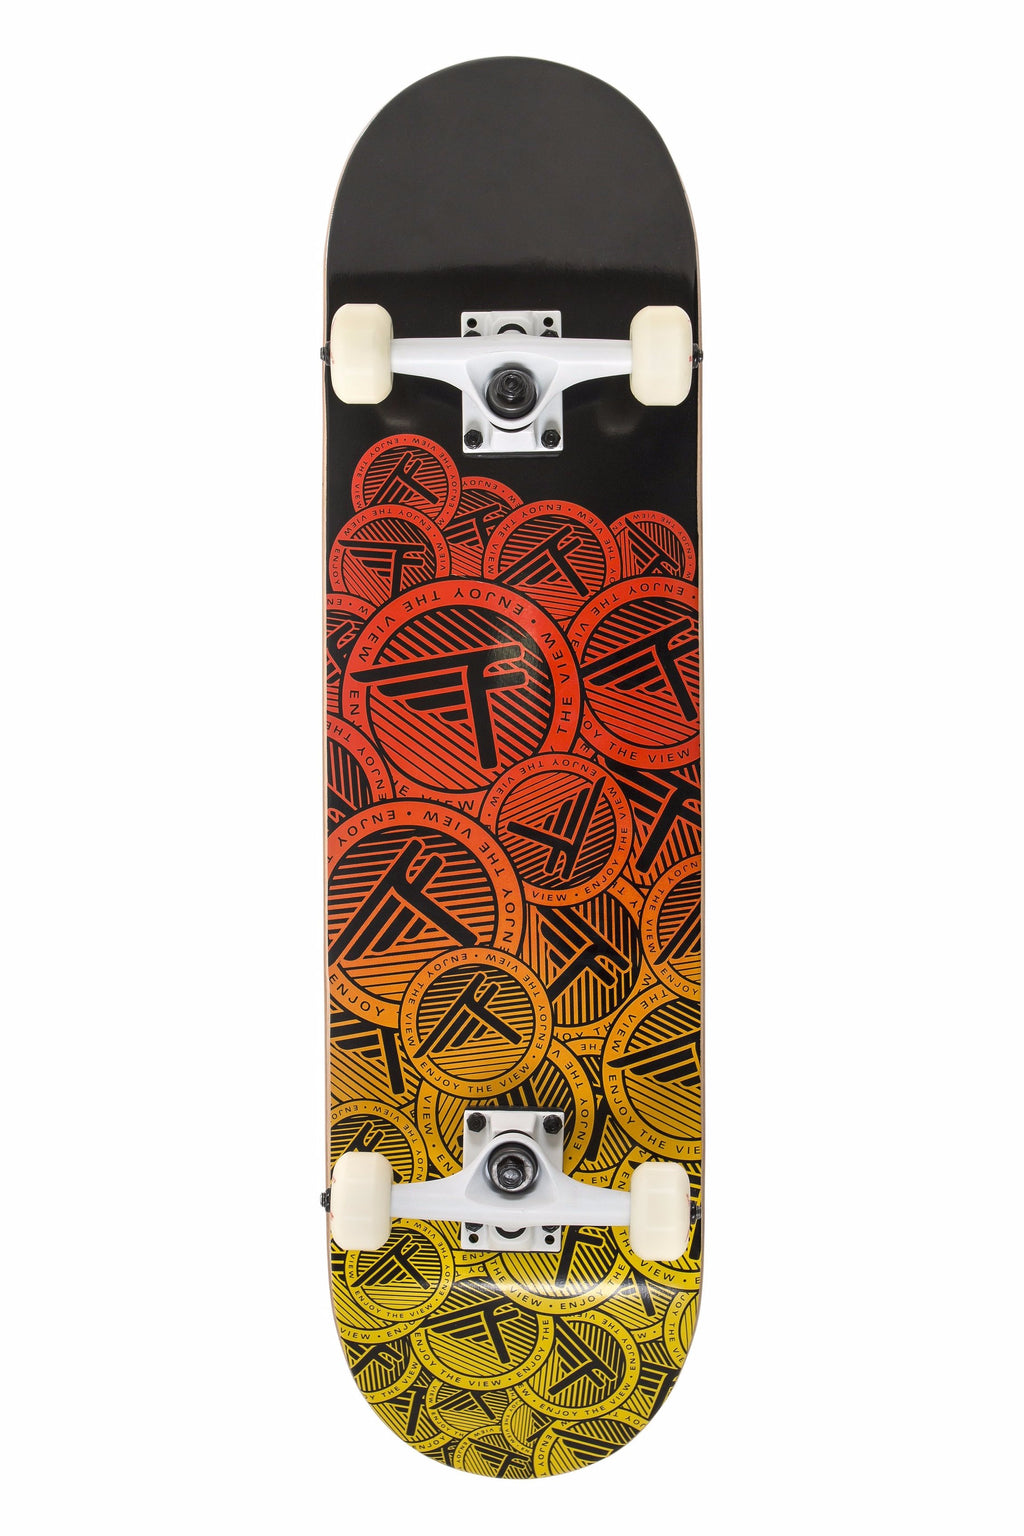 "Flybar 31"" Double Kick Board- Stickers"